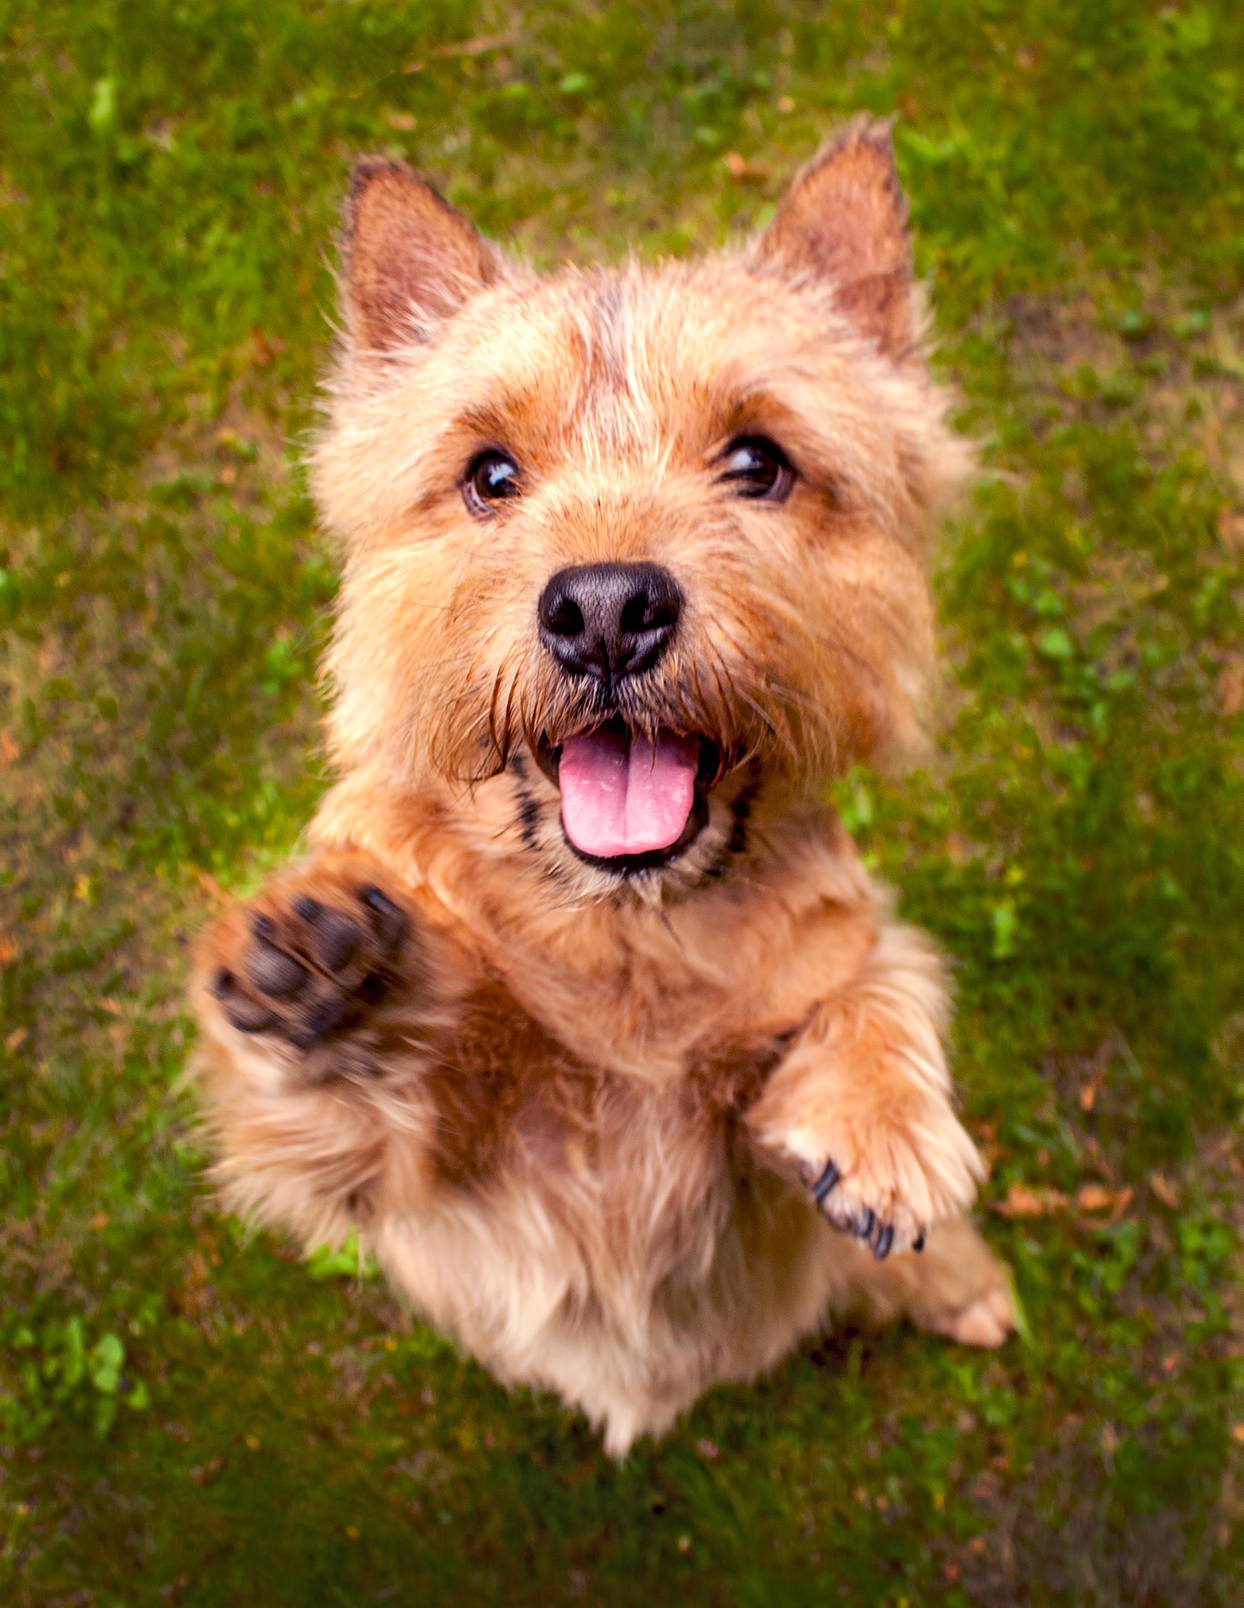 Strawberry blonde adult Norwich terrier jumps up to greet camera outside